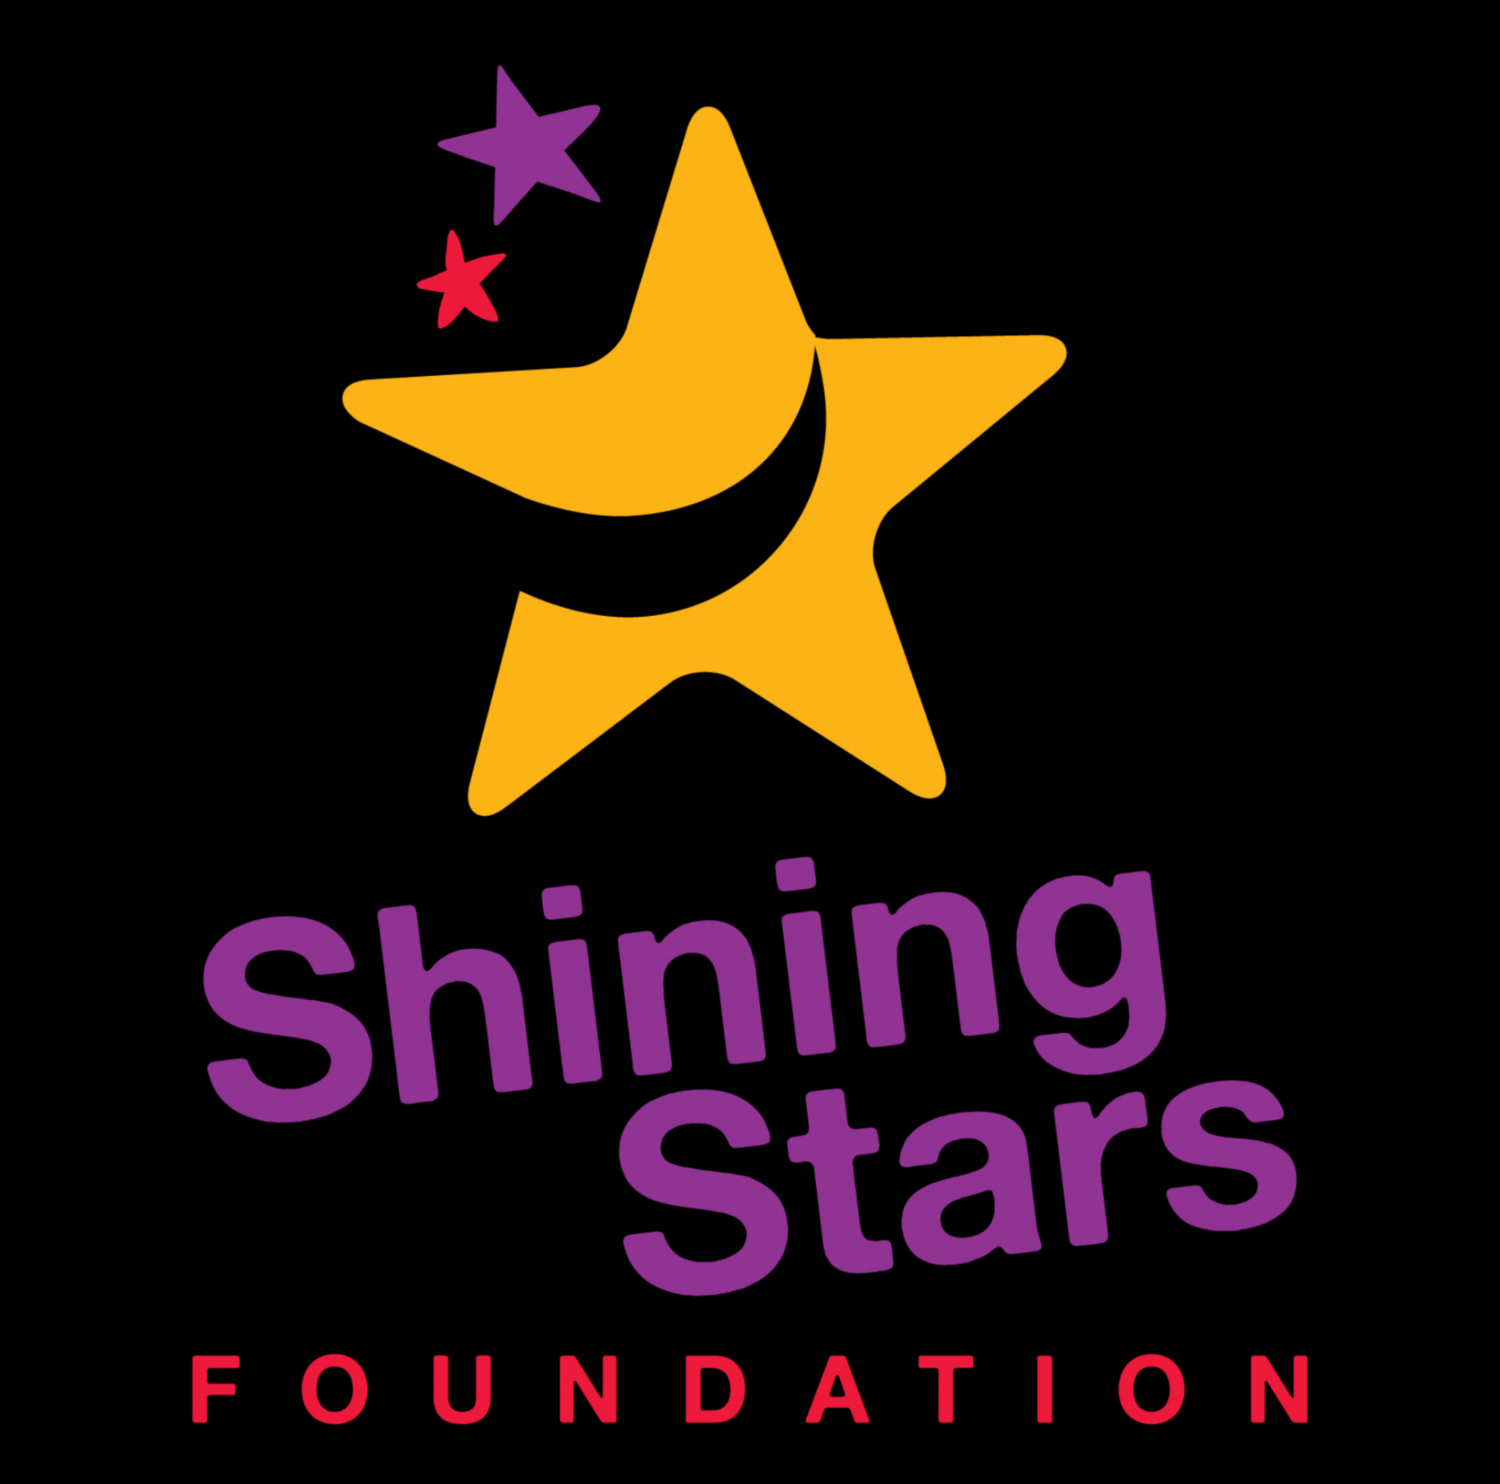 Shining Stars Foundation